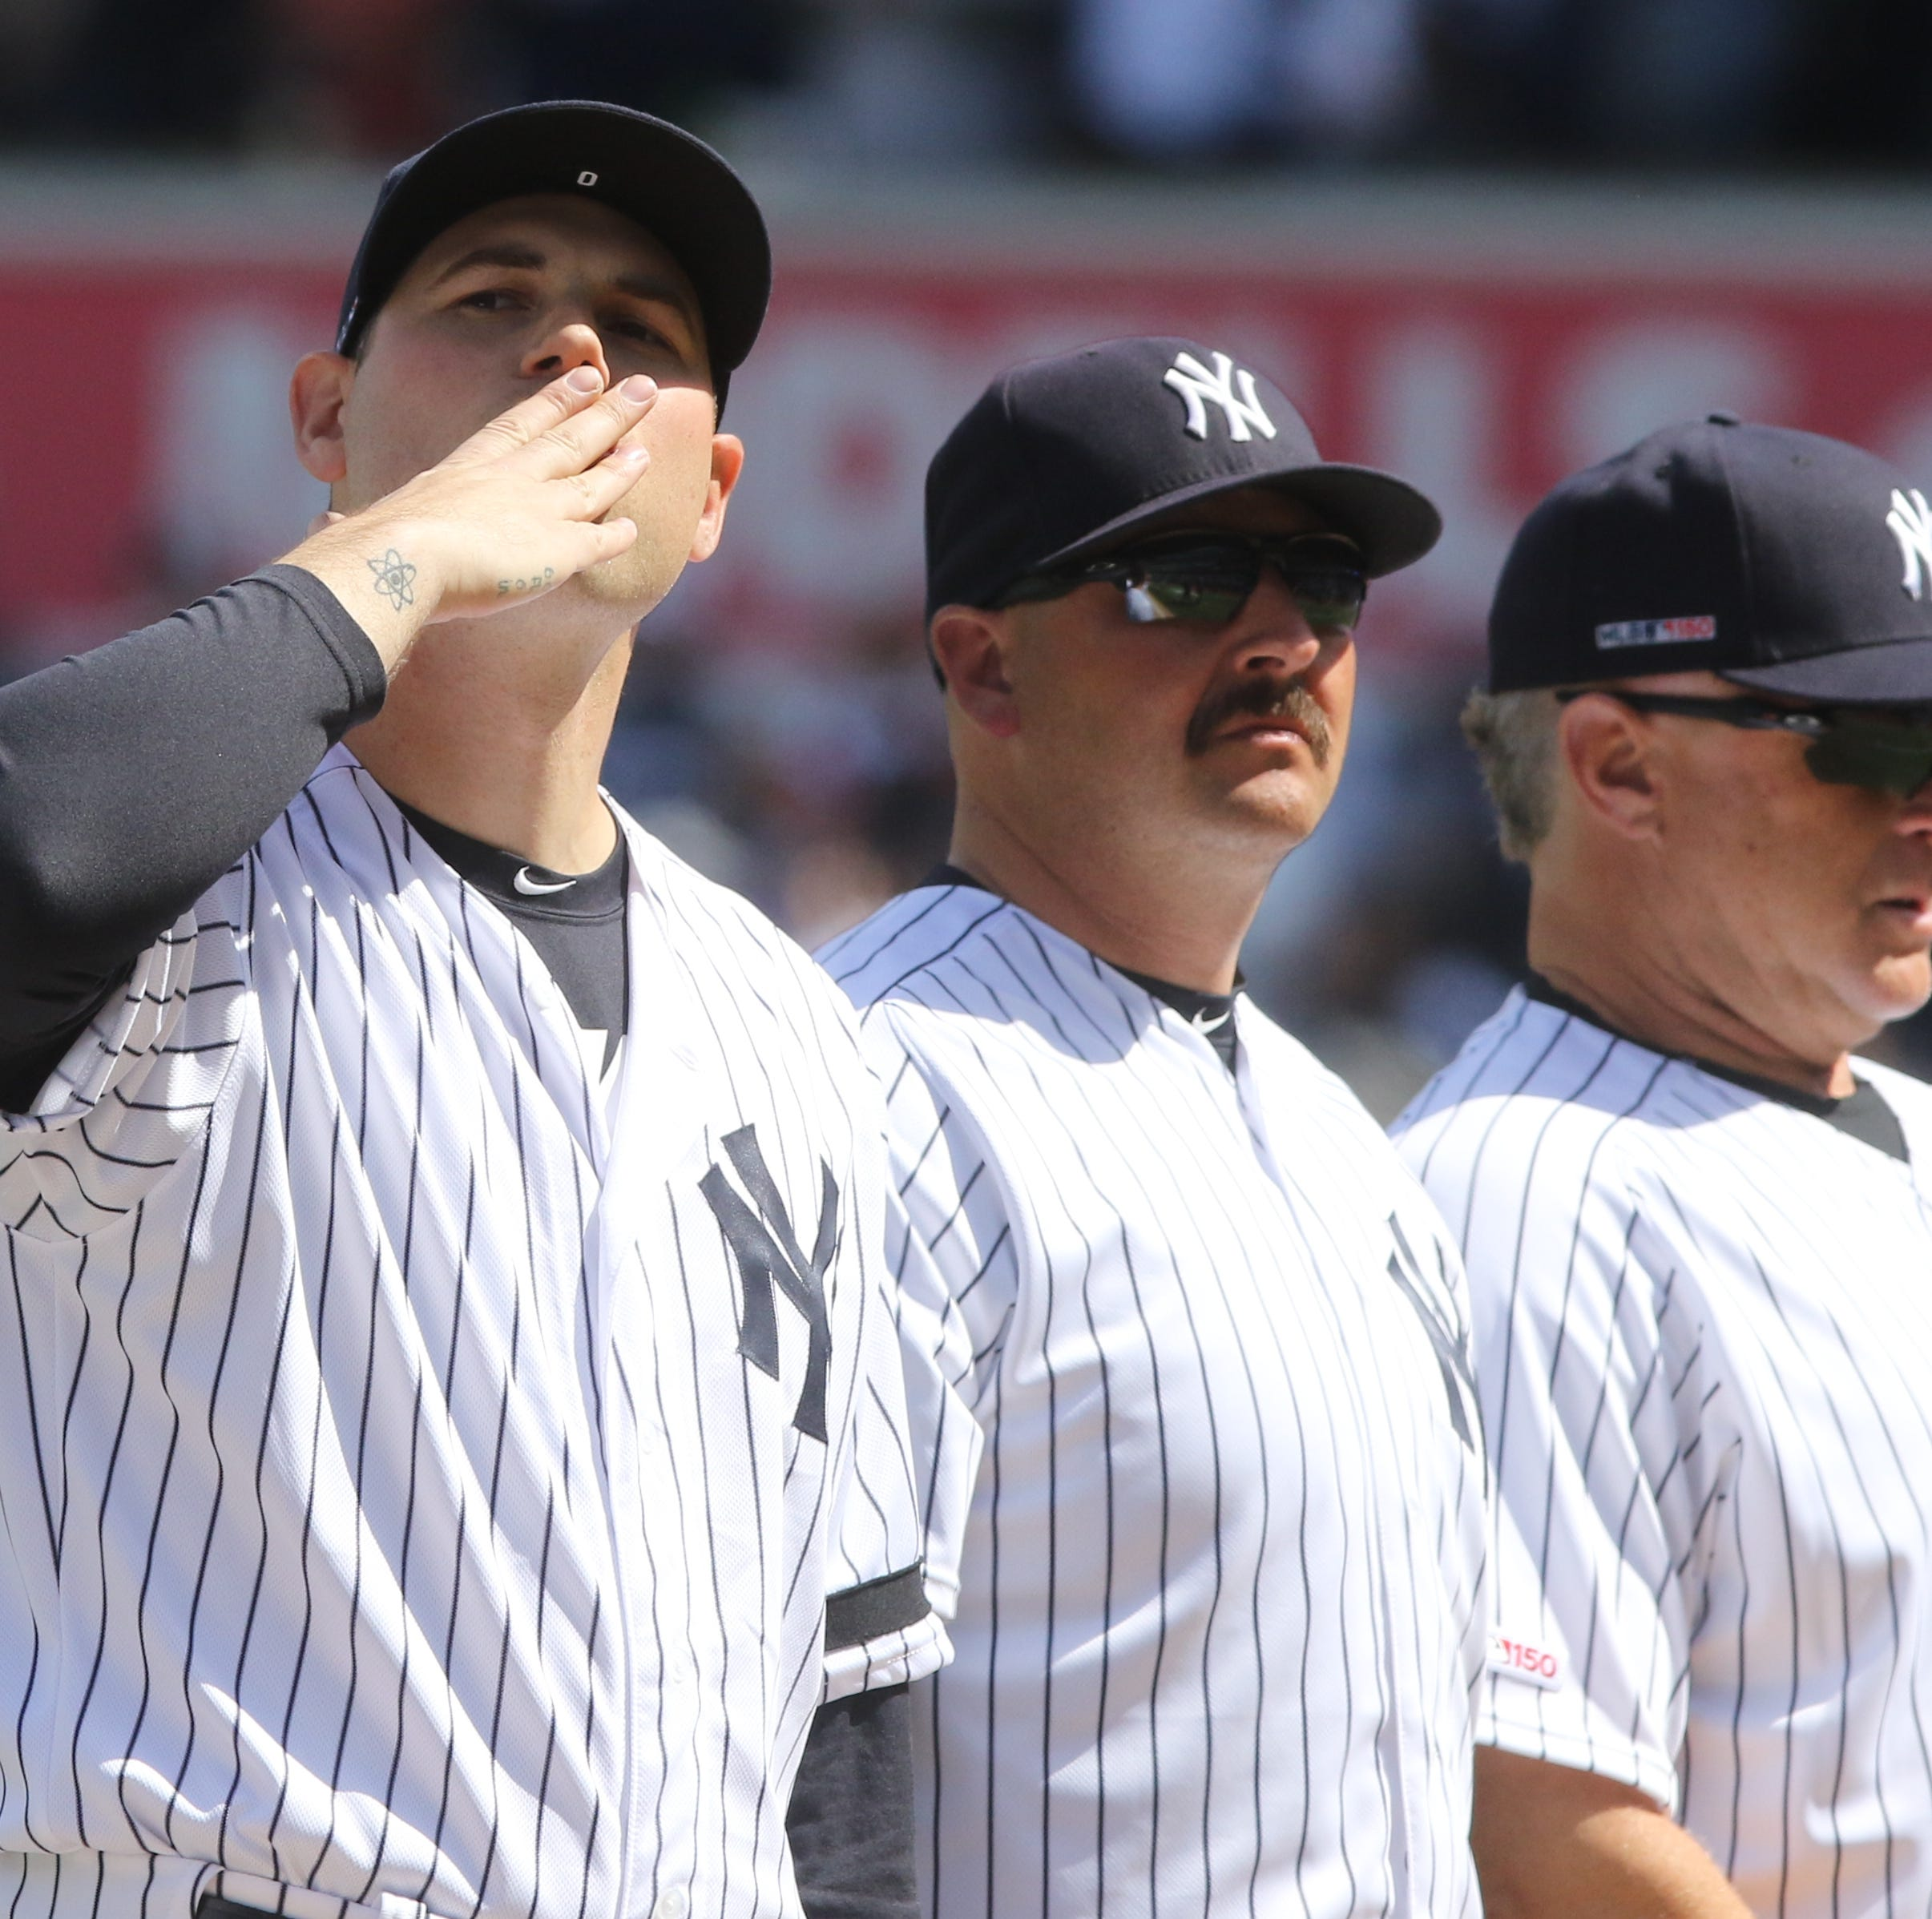 Back in New York, Yankees' Adam Ottavino comes through in pinstripes debut